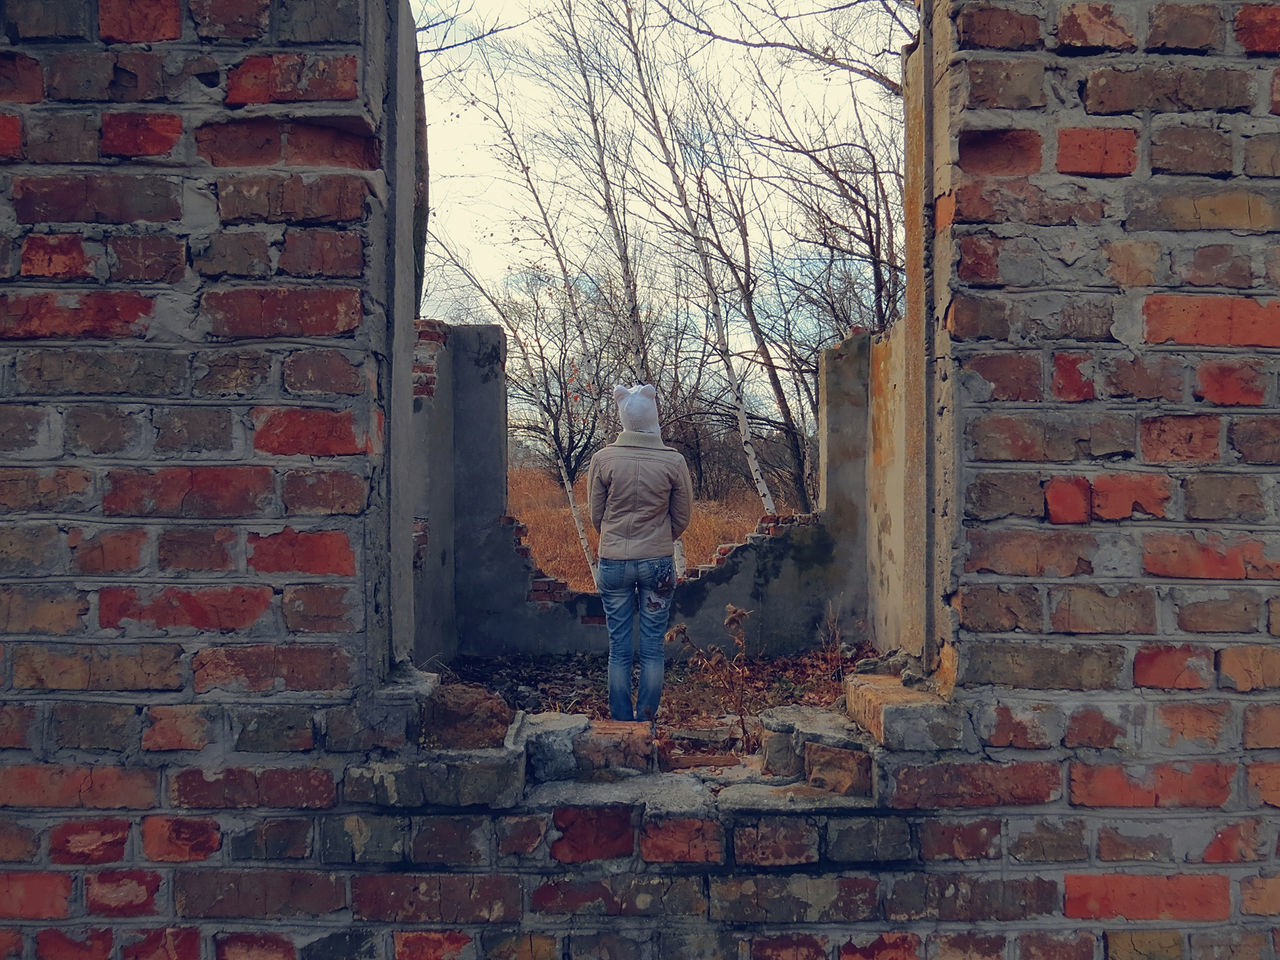 brick wall, rear view, real people, day, outdoors, bare tree, one person, architecture, full length, building exterior, people